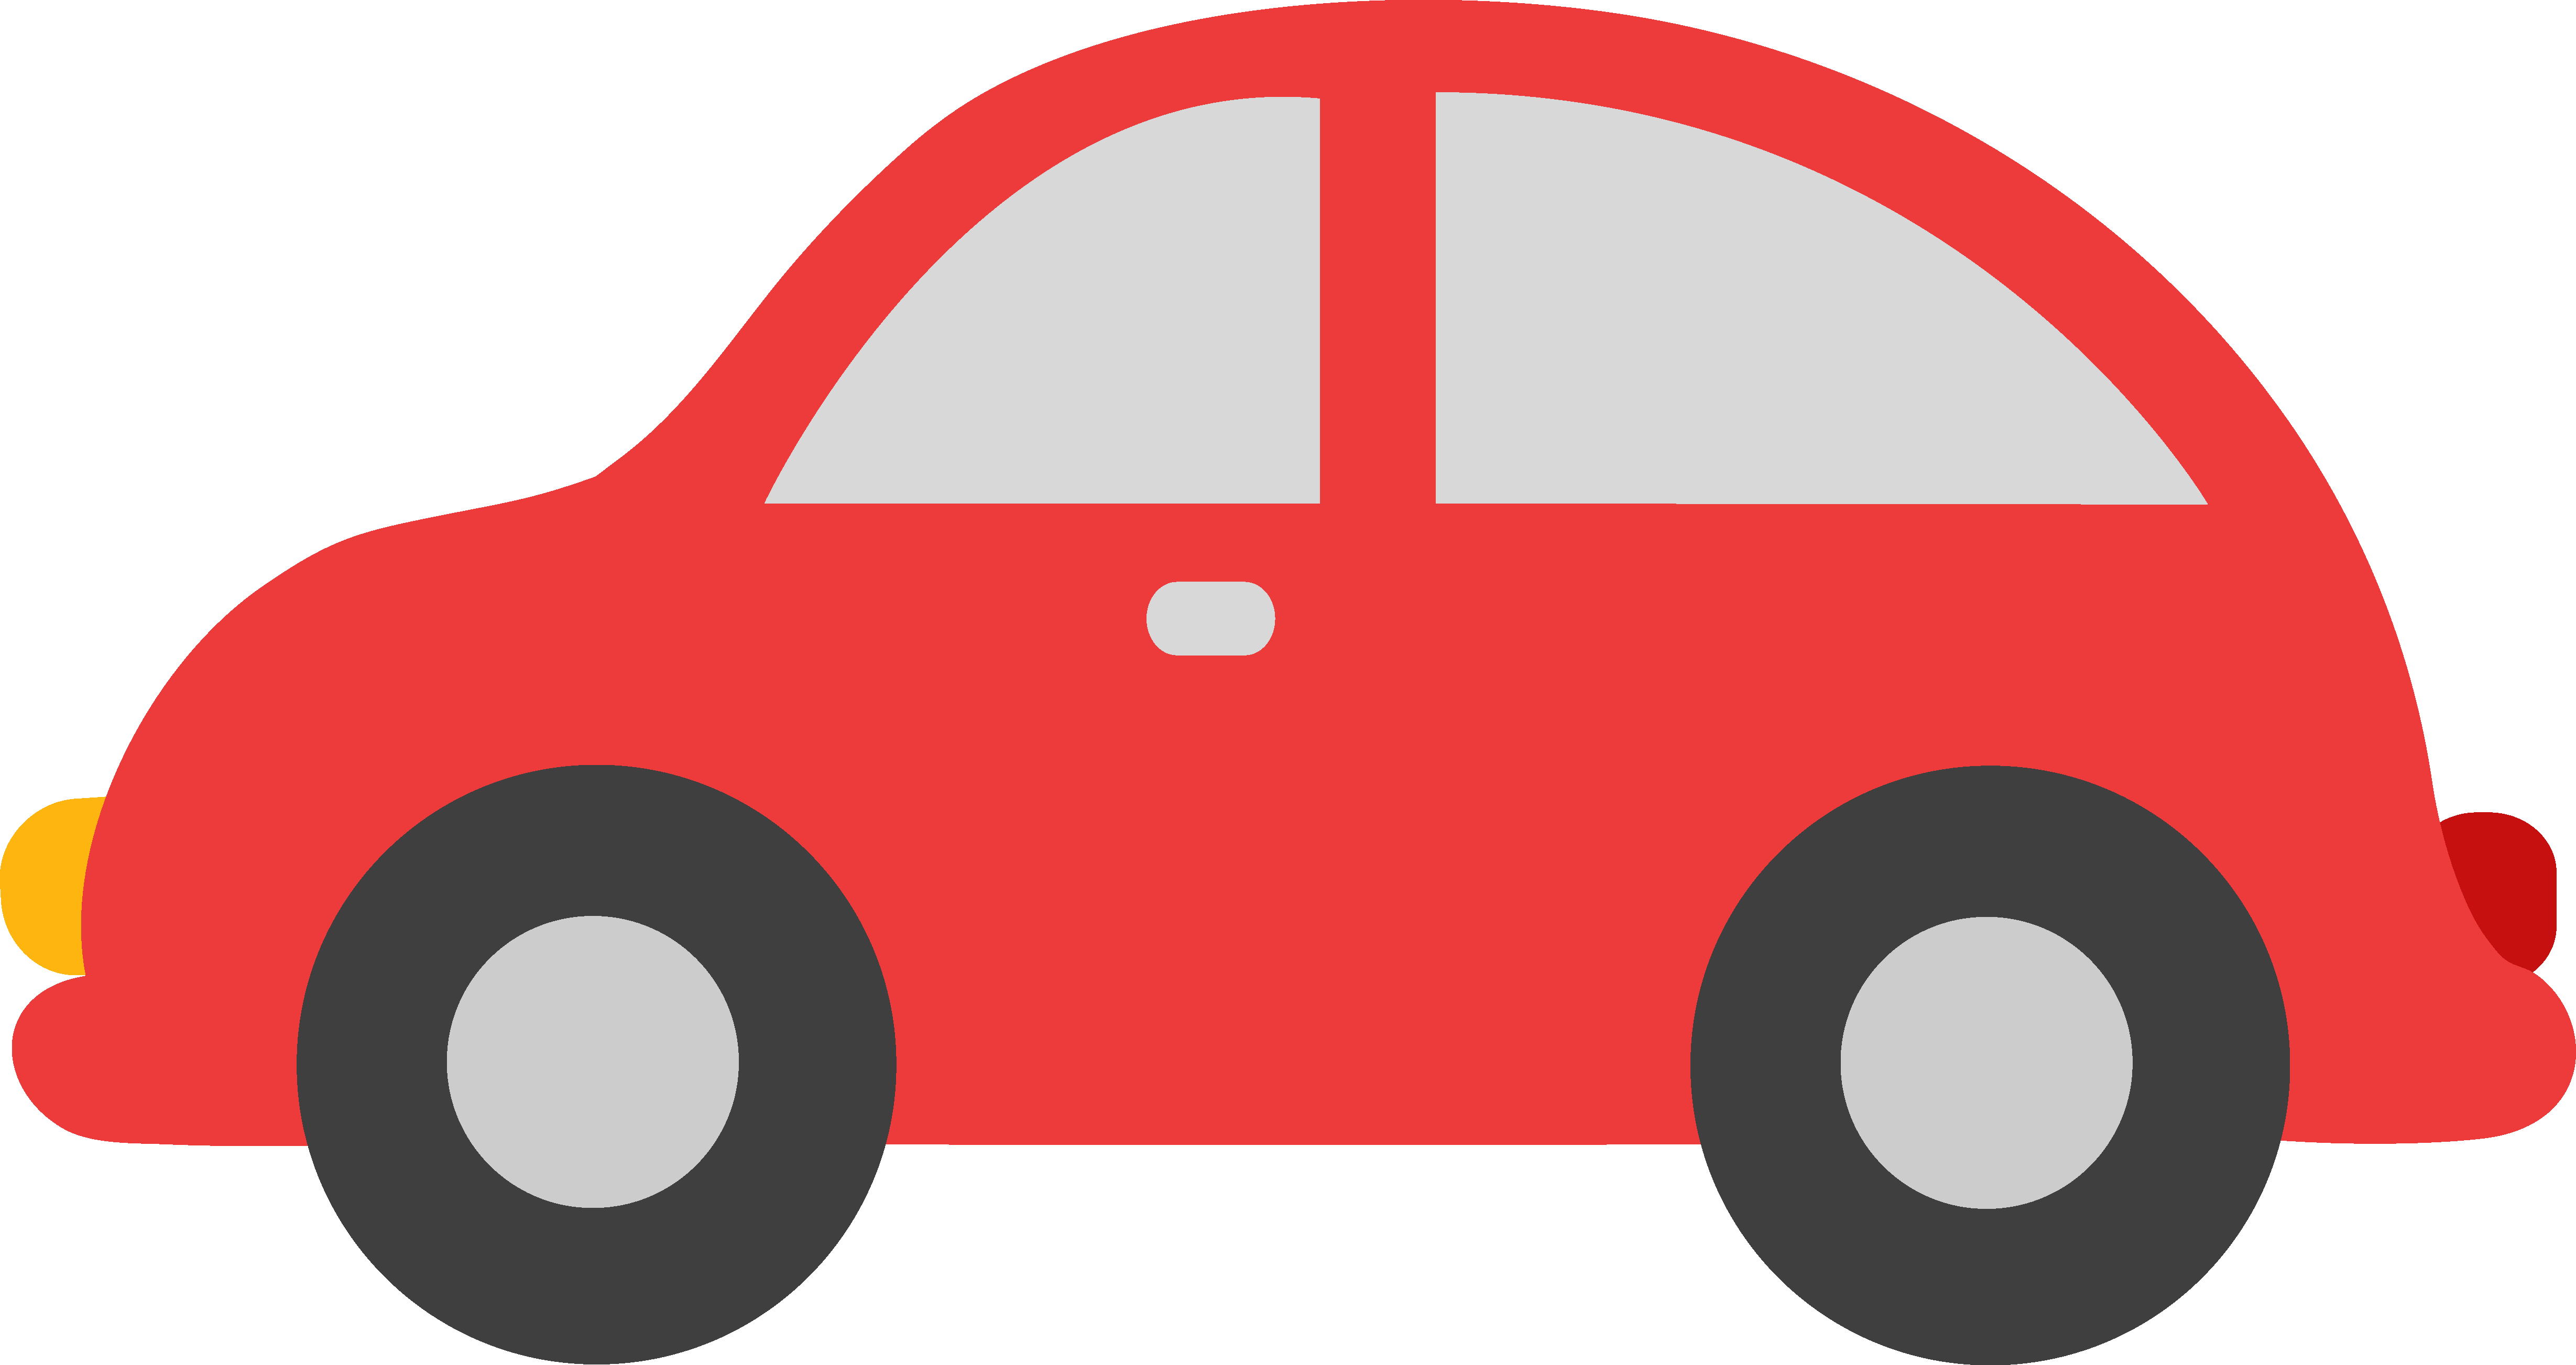 Red car clipart clear background. Red car clipart clear background. Free clip art download